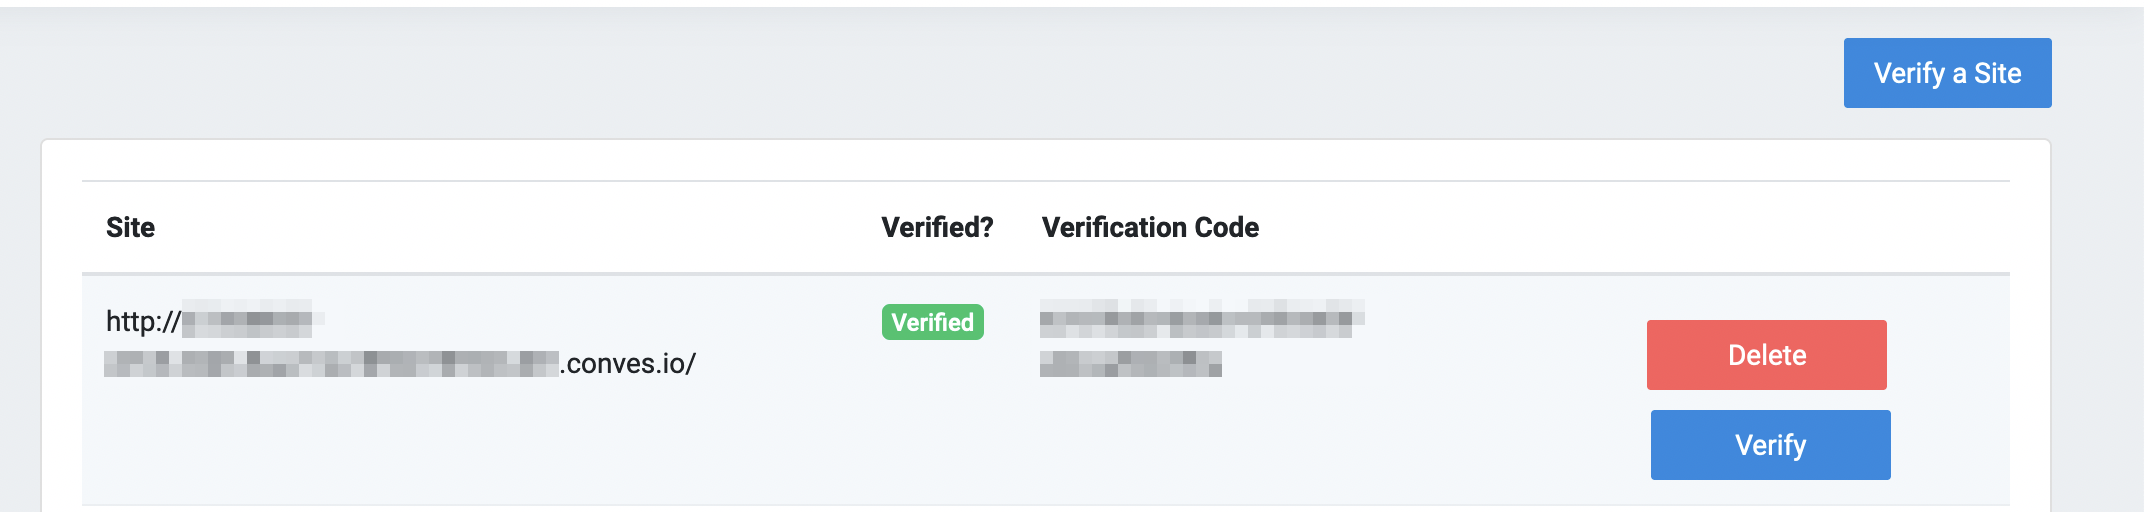 Screenshot showing how to verify ownership of a website in RoboSwarm